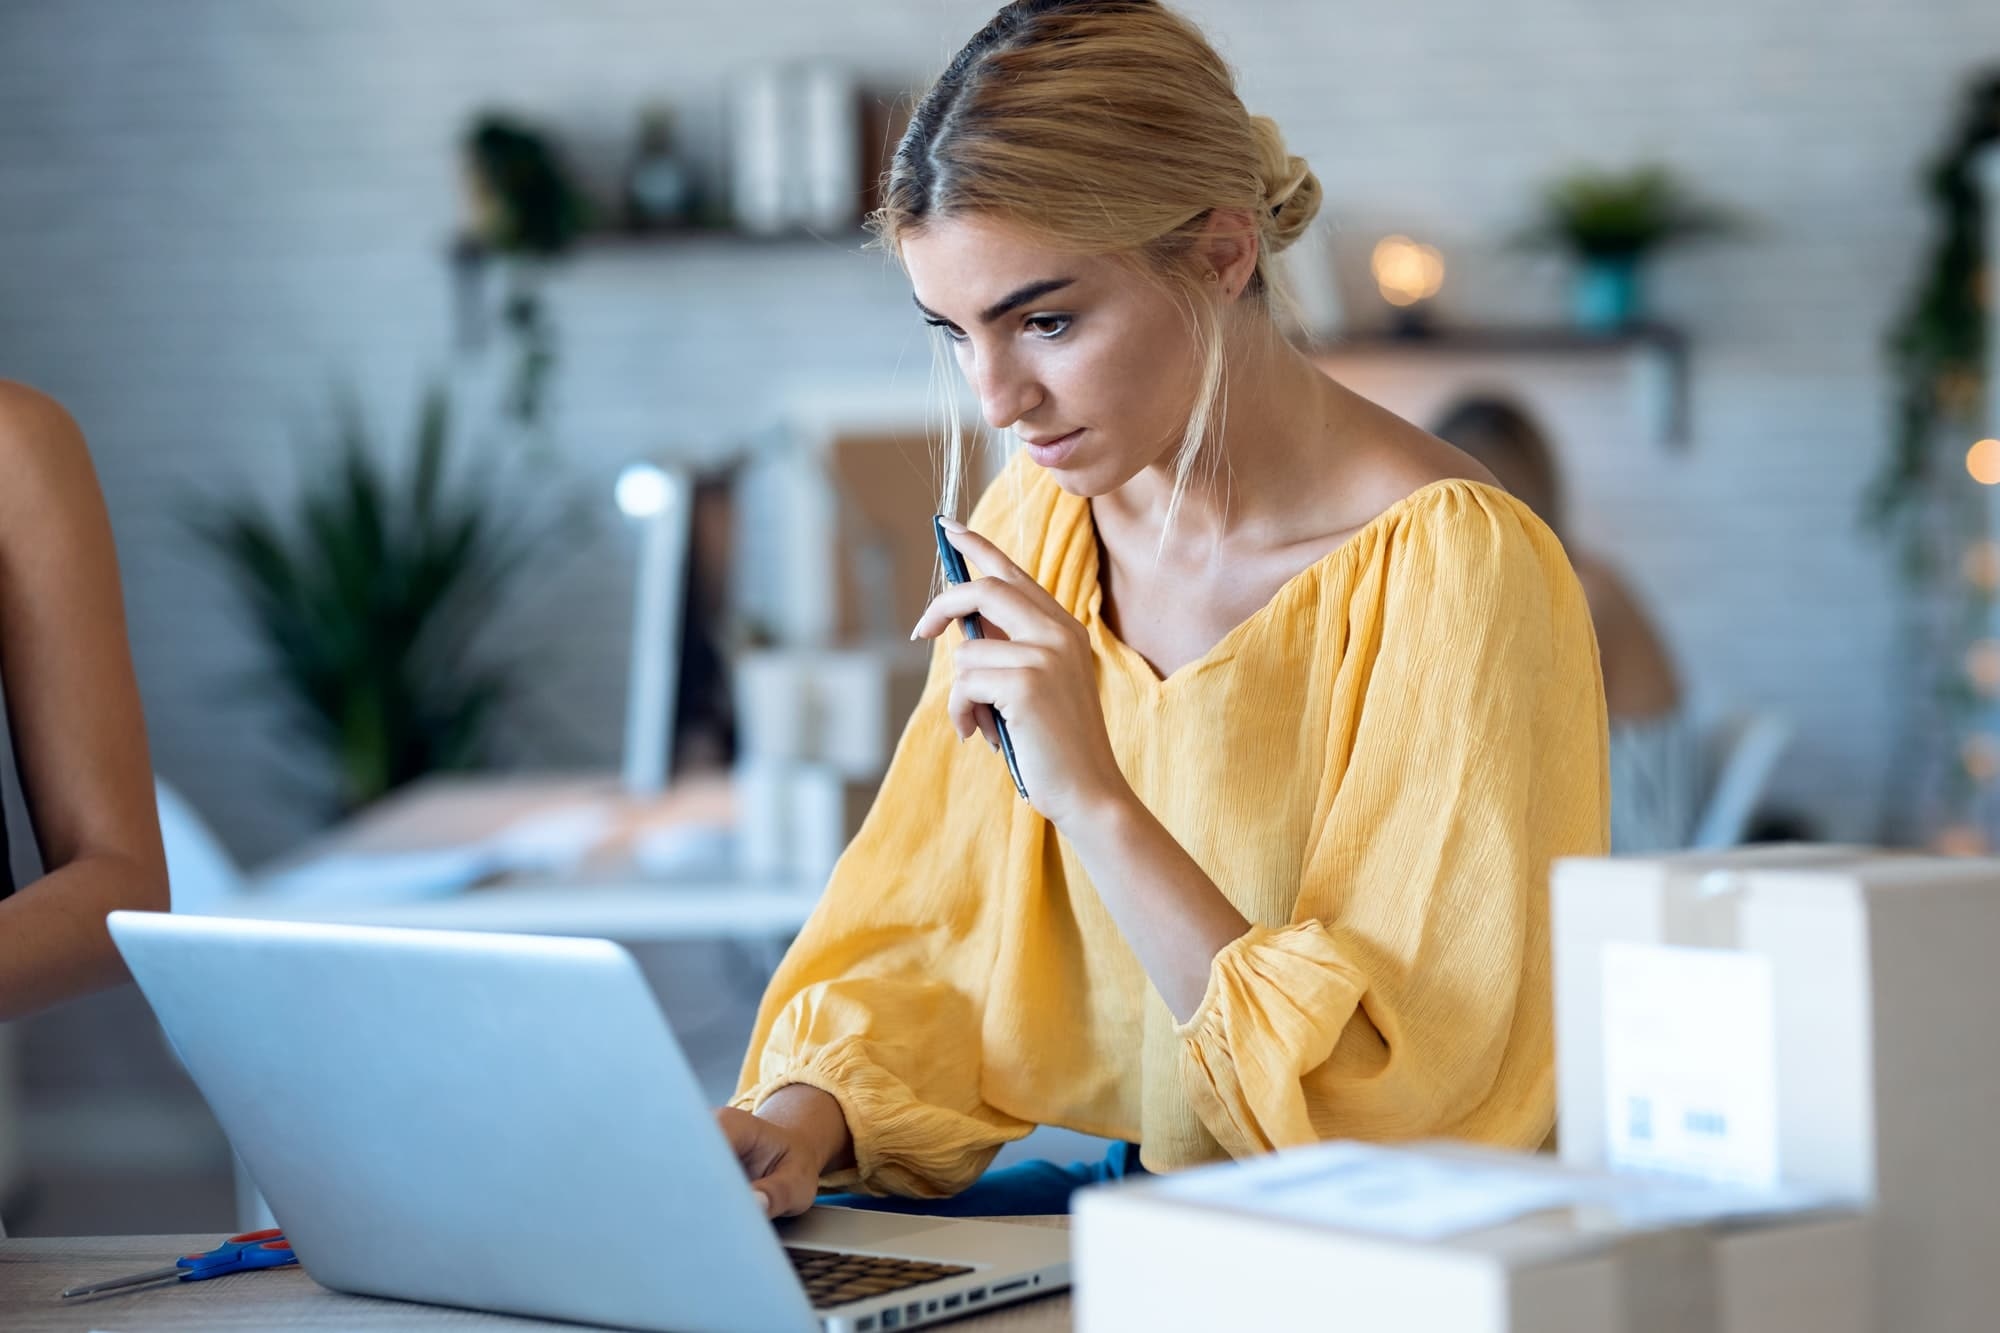 freelance business woman seller checking product order with computer